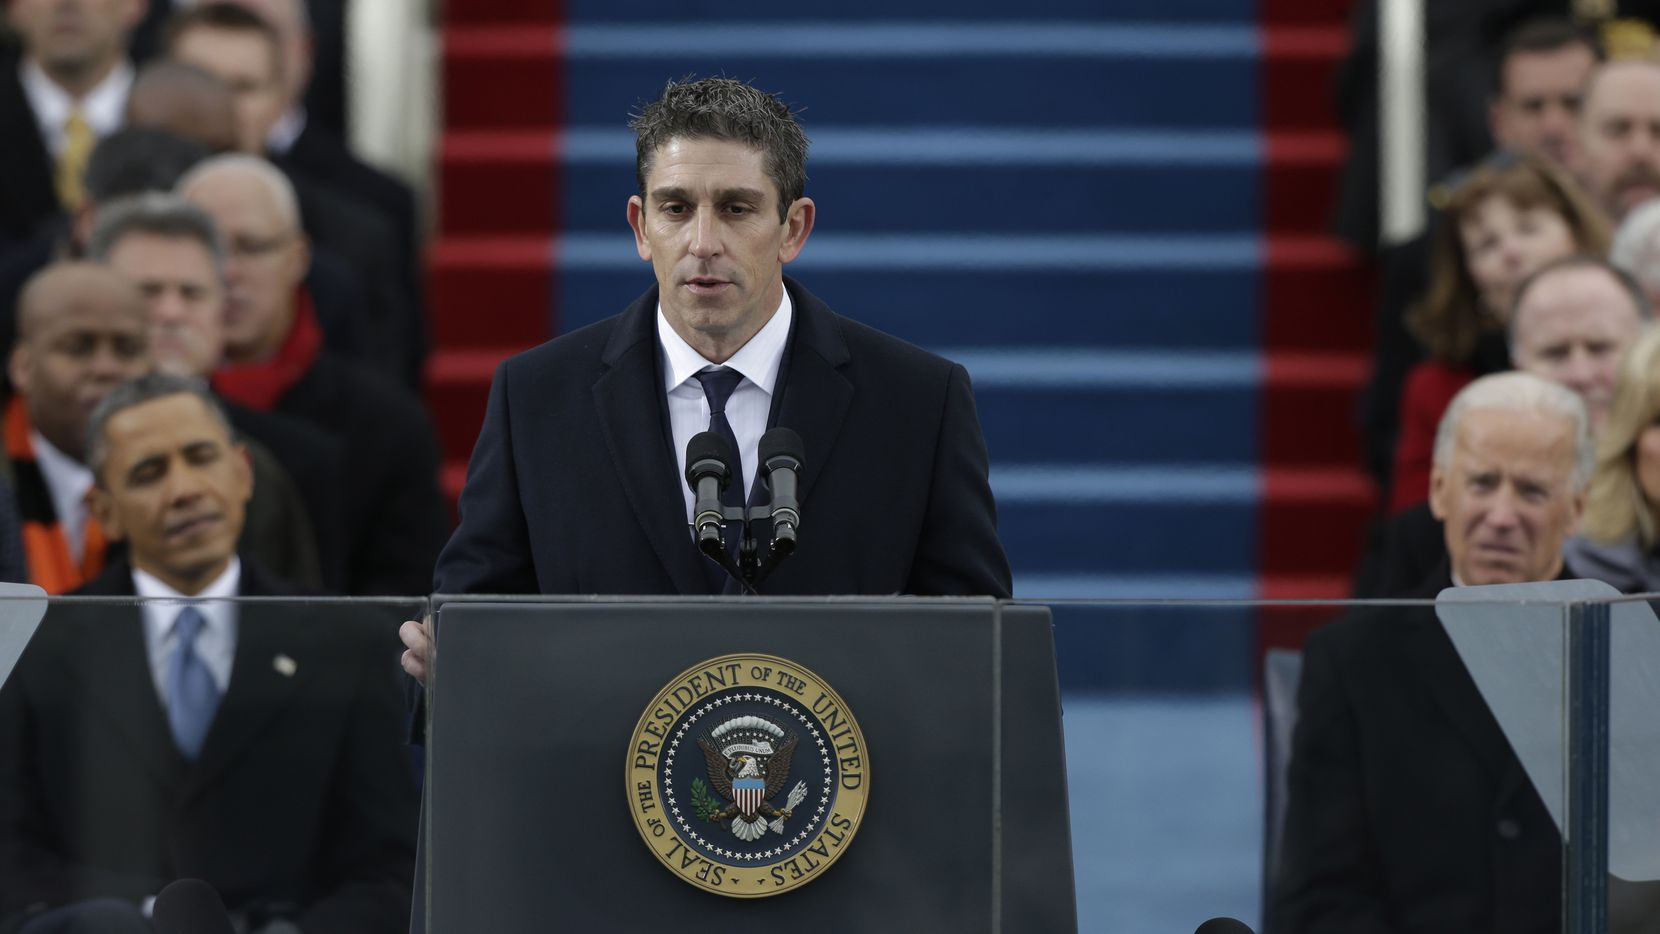 Poet Richard Blanco speaks during the ceremonial swearing-in at the U.S. Capitol during the 57th Presidential Inauguration in Washington, DC on January 21, 2013.